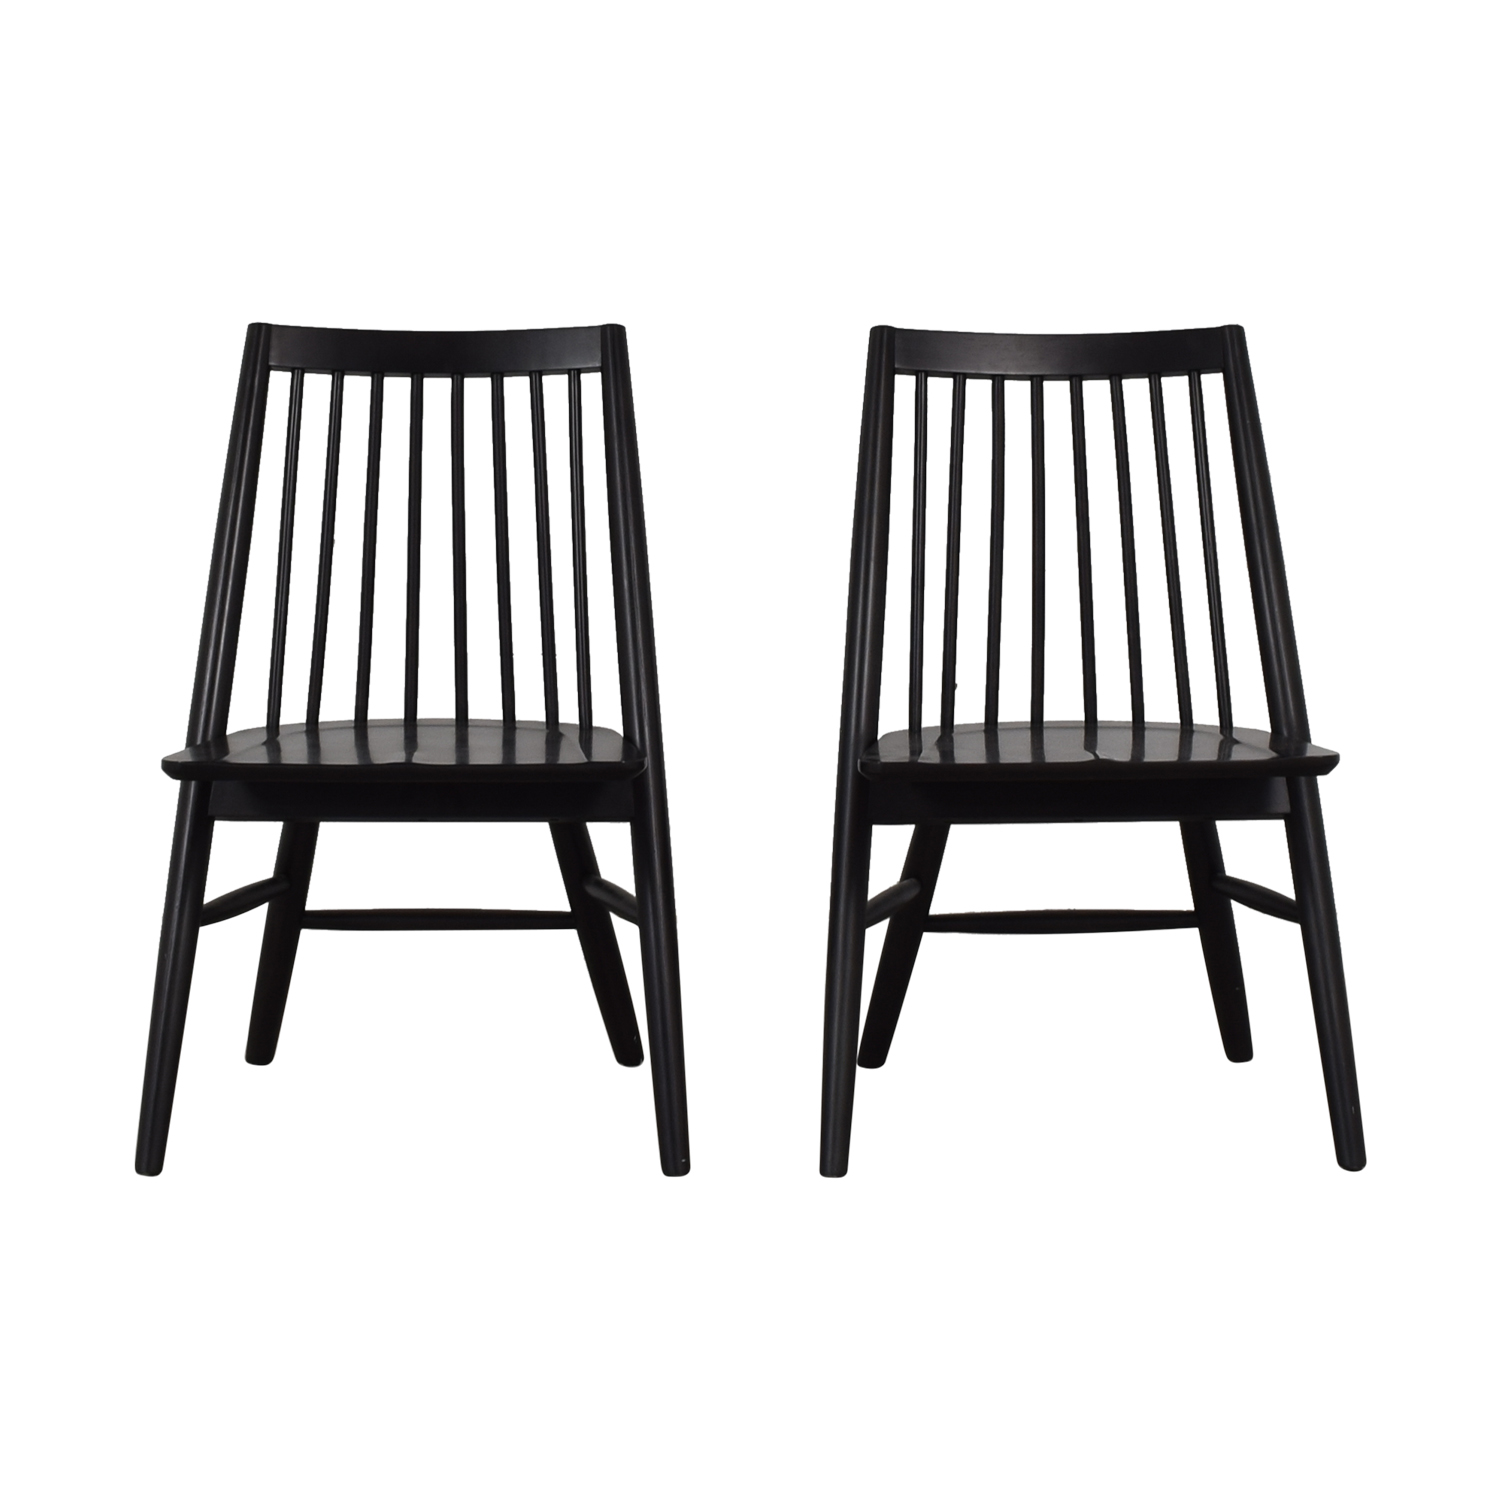 buy West Elm Black Spindle Chairs West Elm